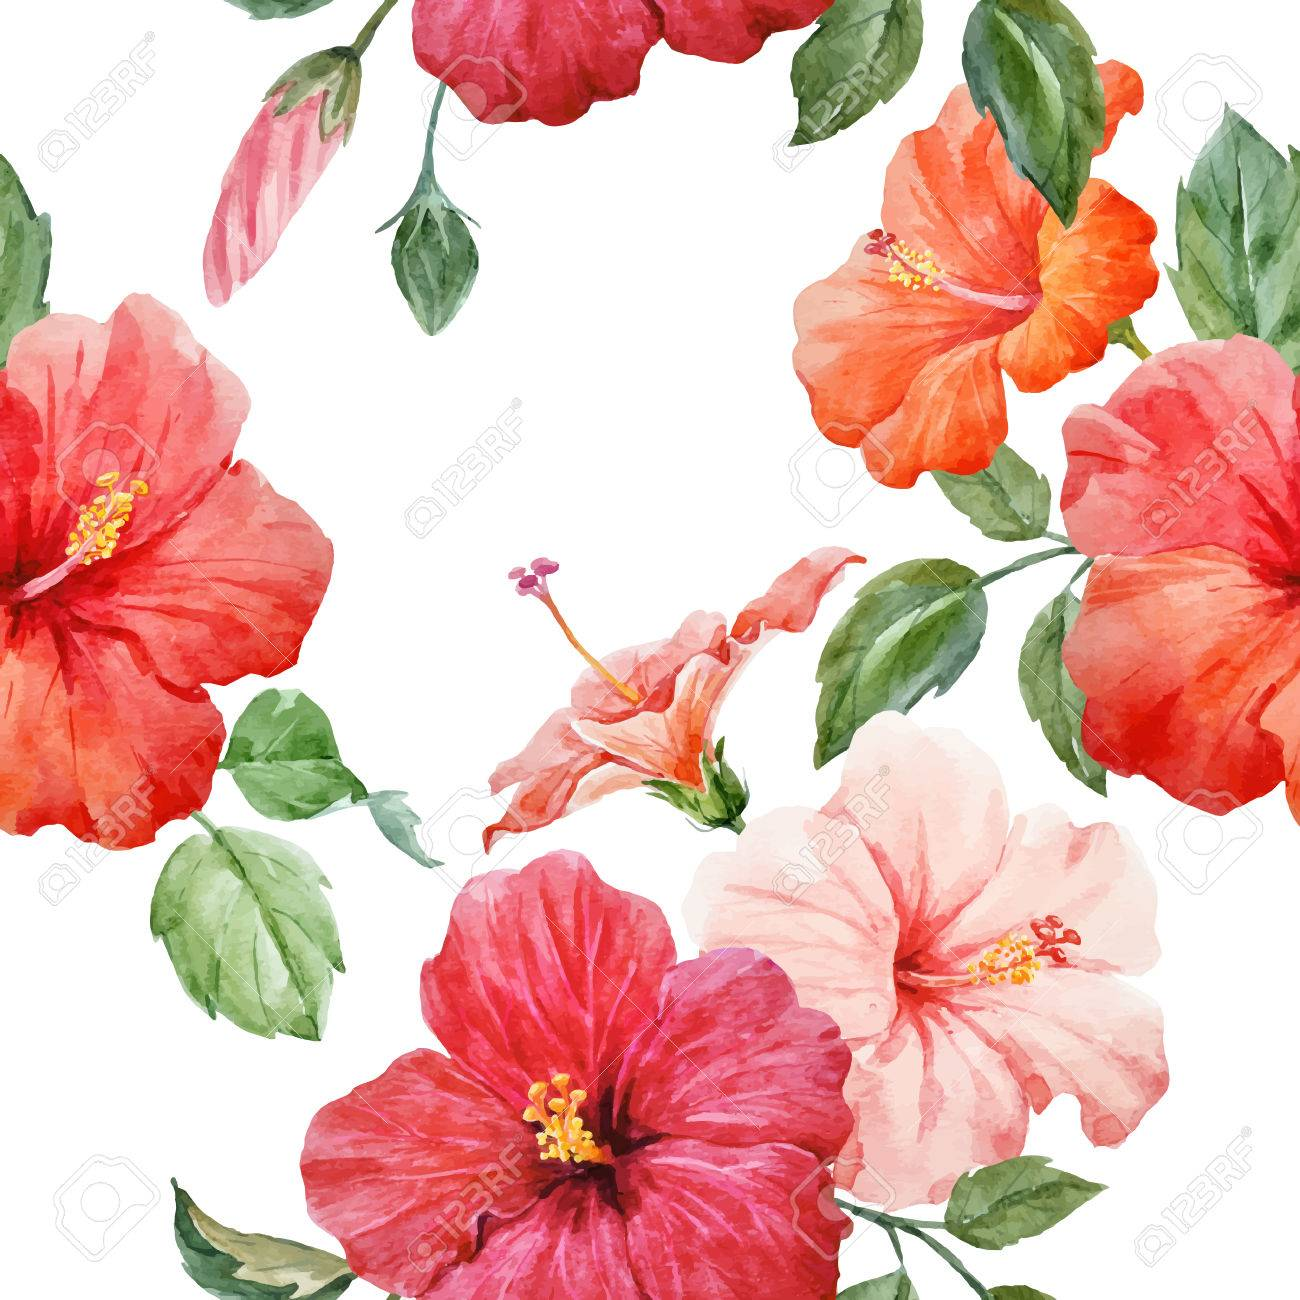 Seamless tropical vector pattern with watercolor hibiscus flowers seamless tropical vector pattern with watercolor hibiscus flowers stock vector 82983986 izmirmasajfo